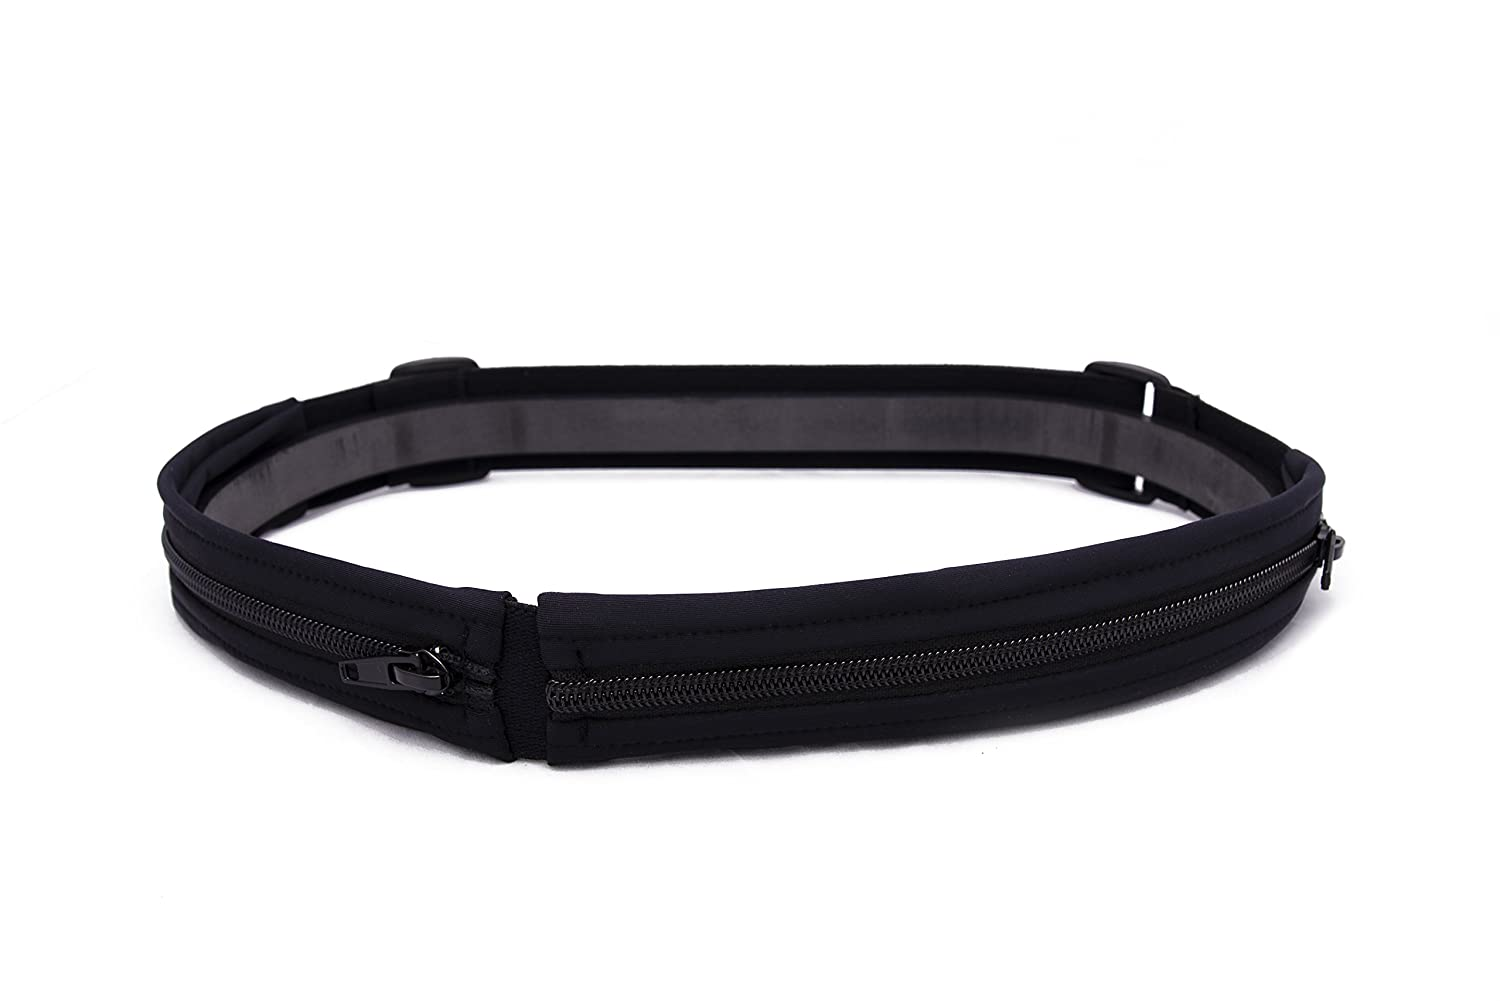 SPIbelt Glide No-Bounce Running Belt That You Can Step Into – No Buckles – 2 Pockets – for Runners, Athletes and Adventurers